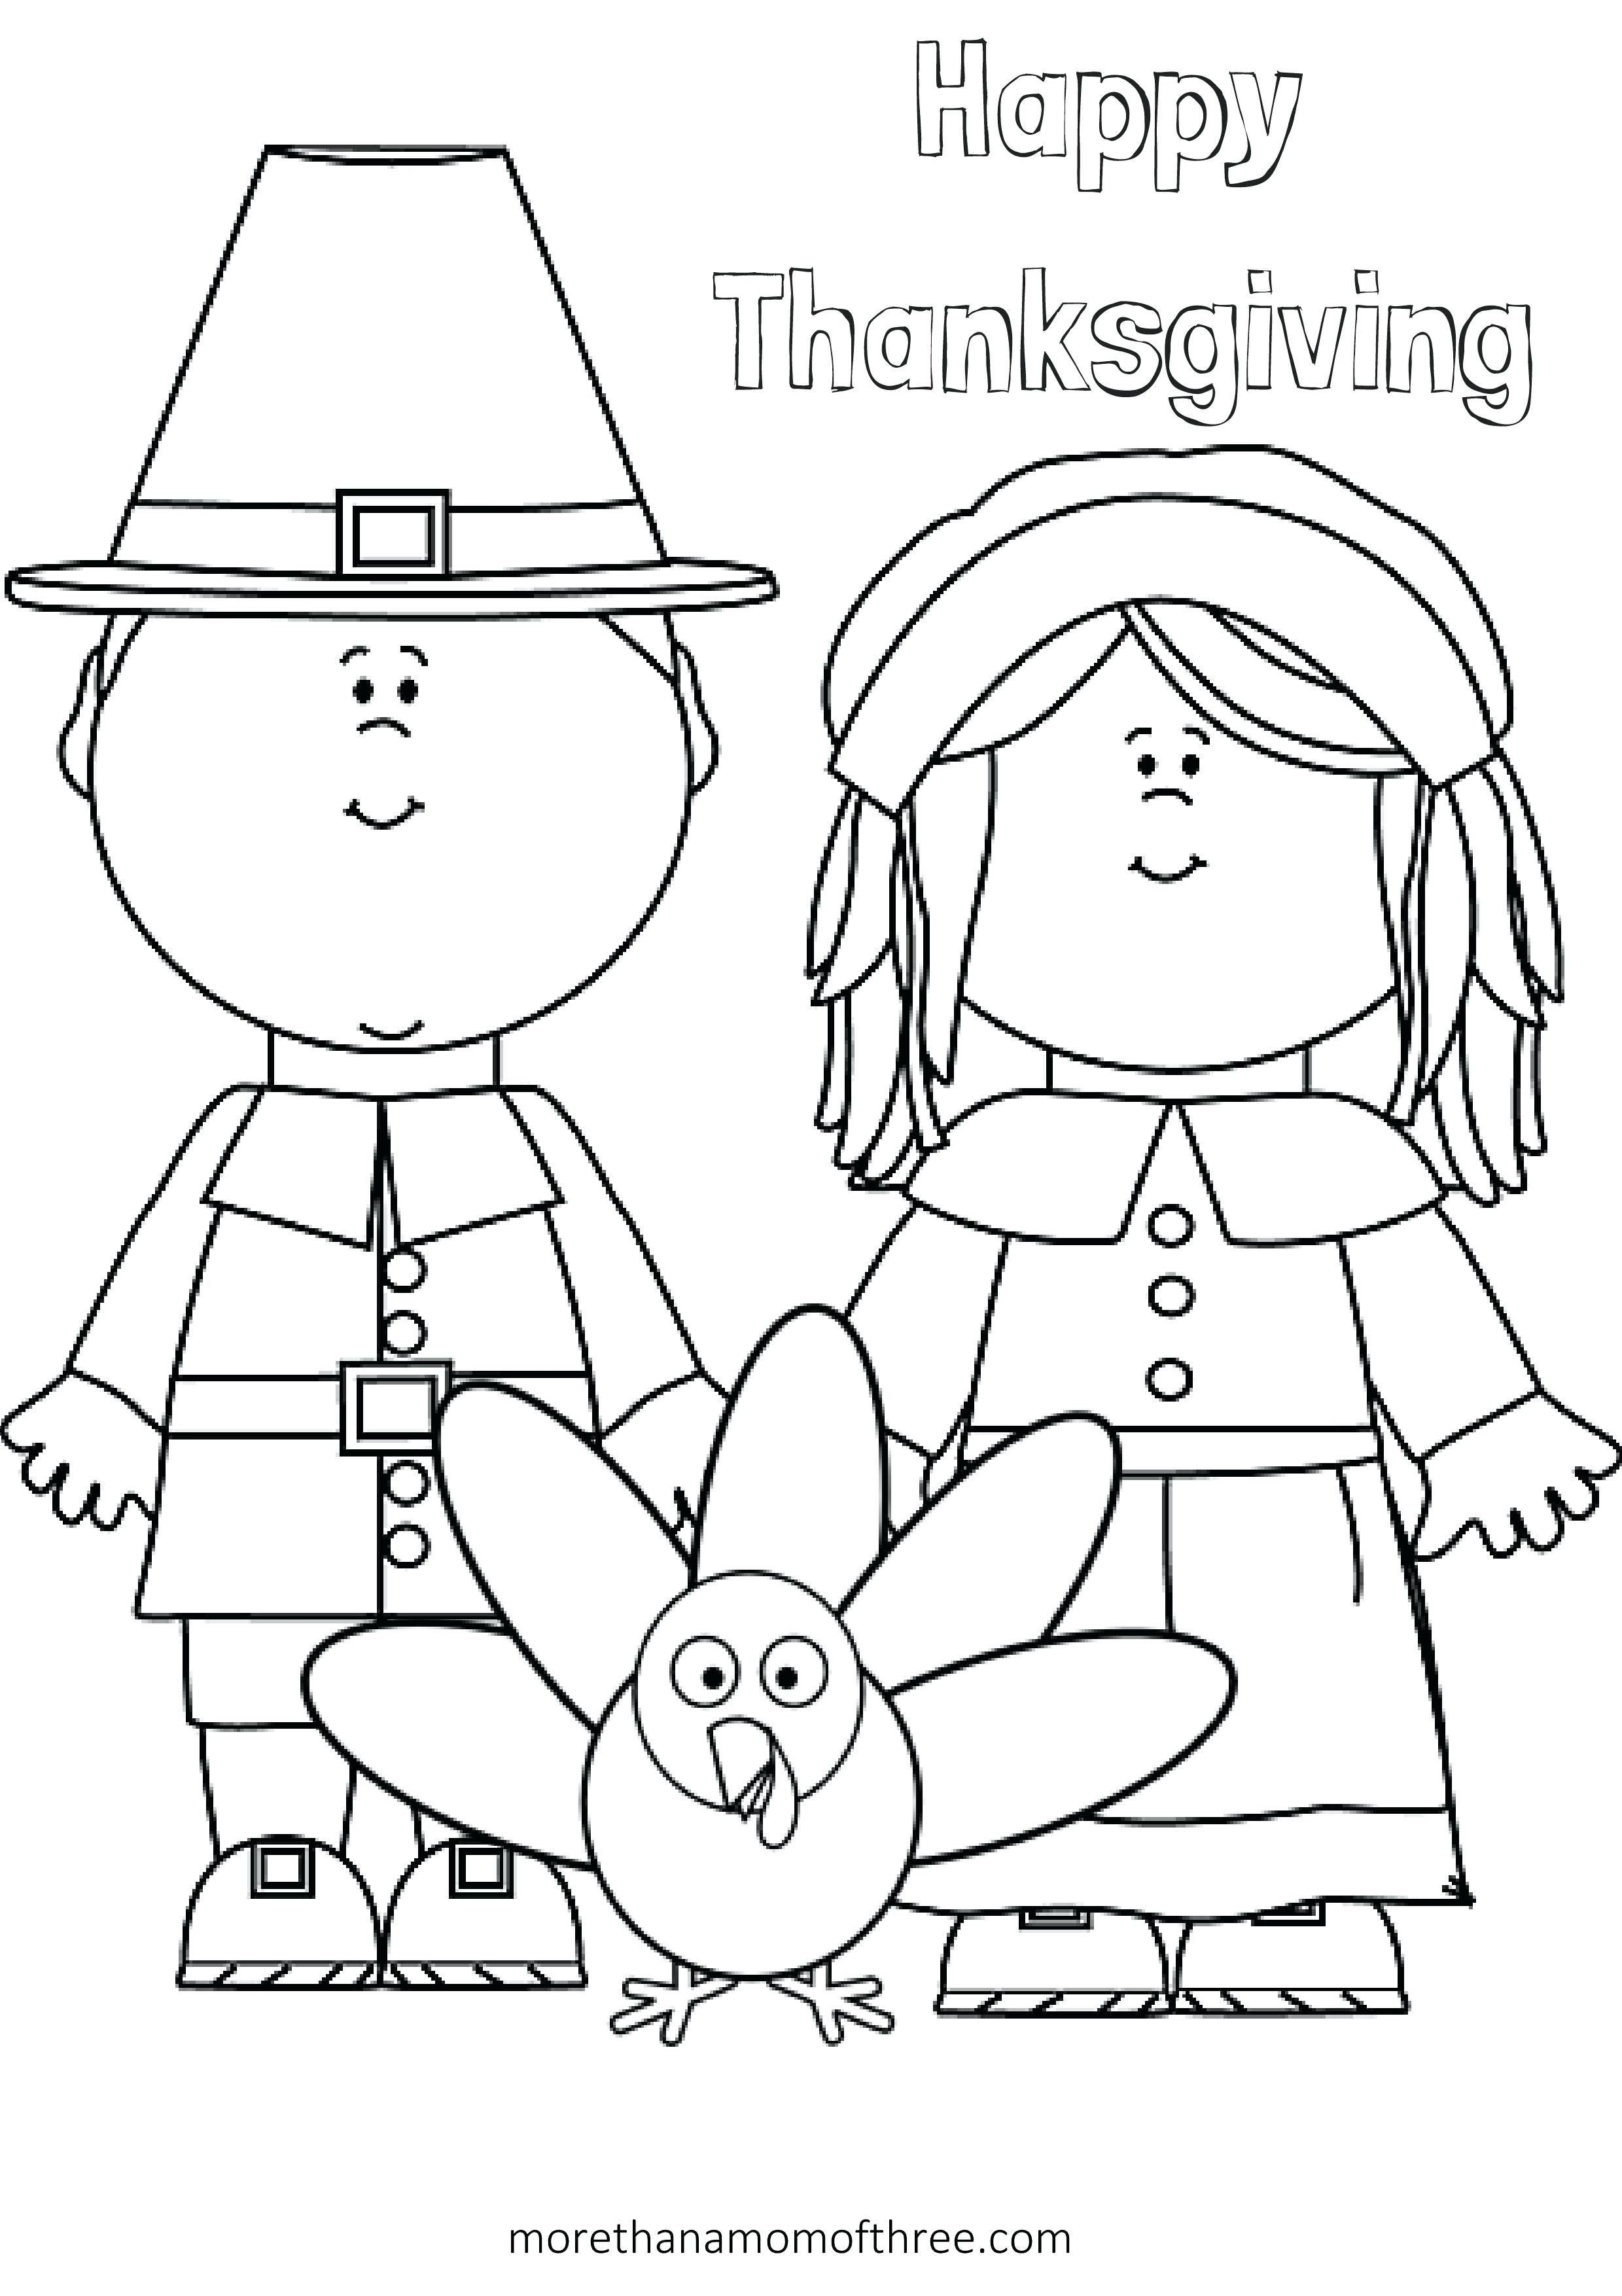 Oriental Trading Coloring Pages Beautiful Printable Missionary Colori Thanksgiving Coloring Sheets Free Thanksgiving Coloring Pages Thanksgiving Coloring Pages